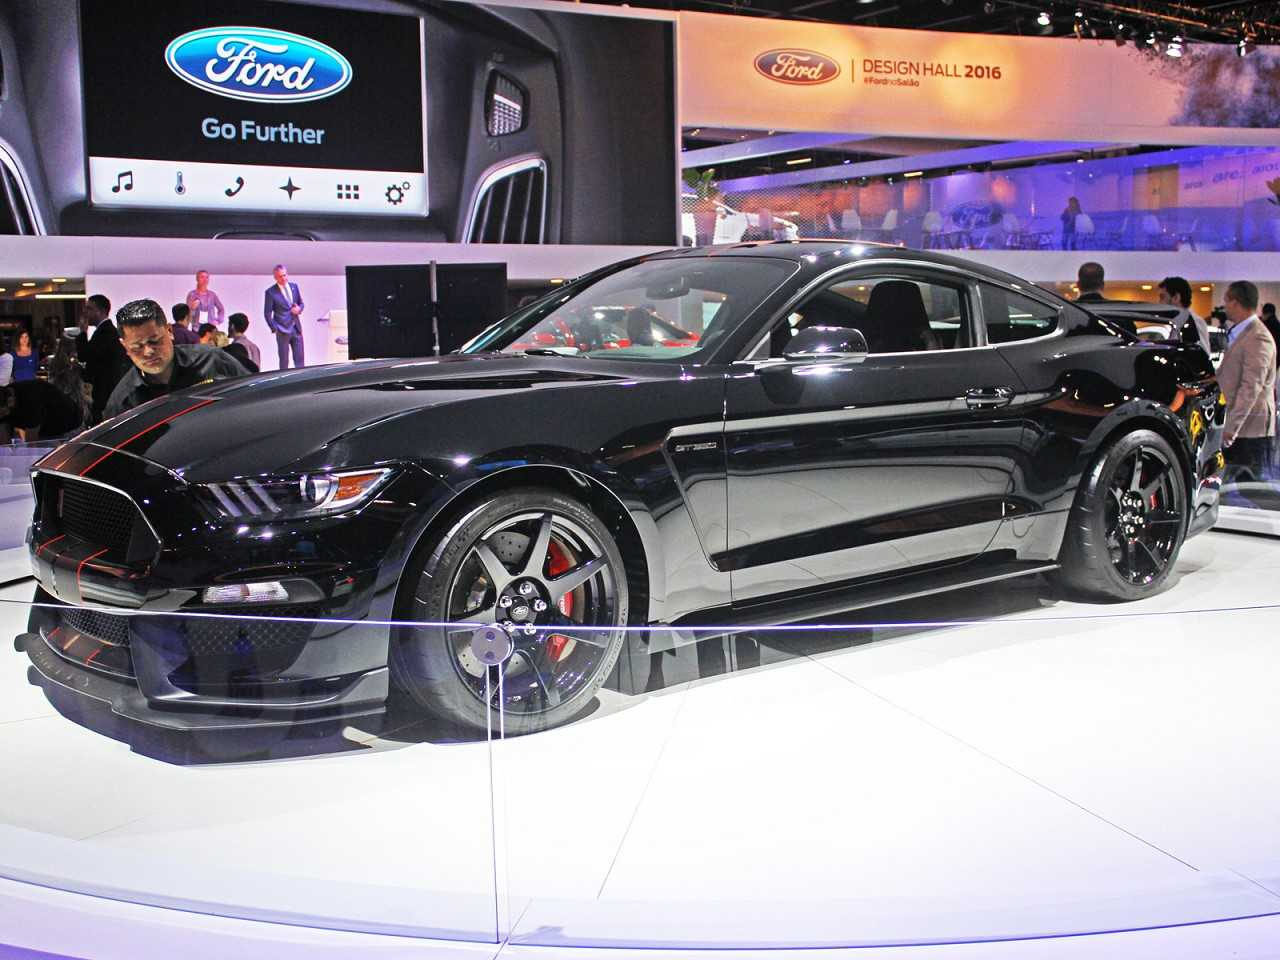 FordMustang 2017 - ângulo frontal